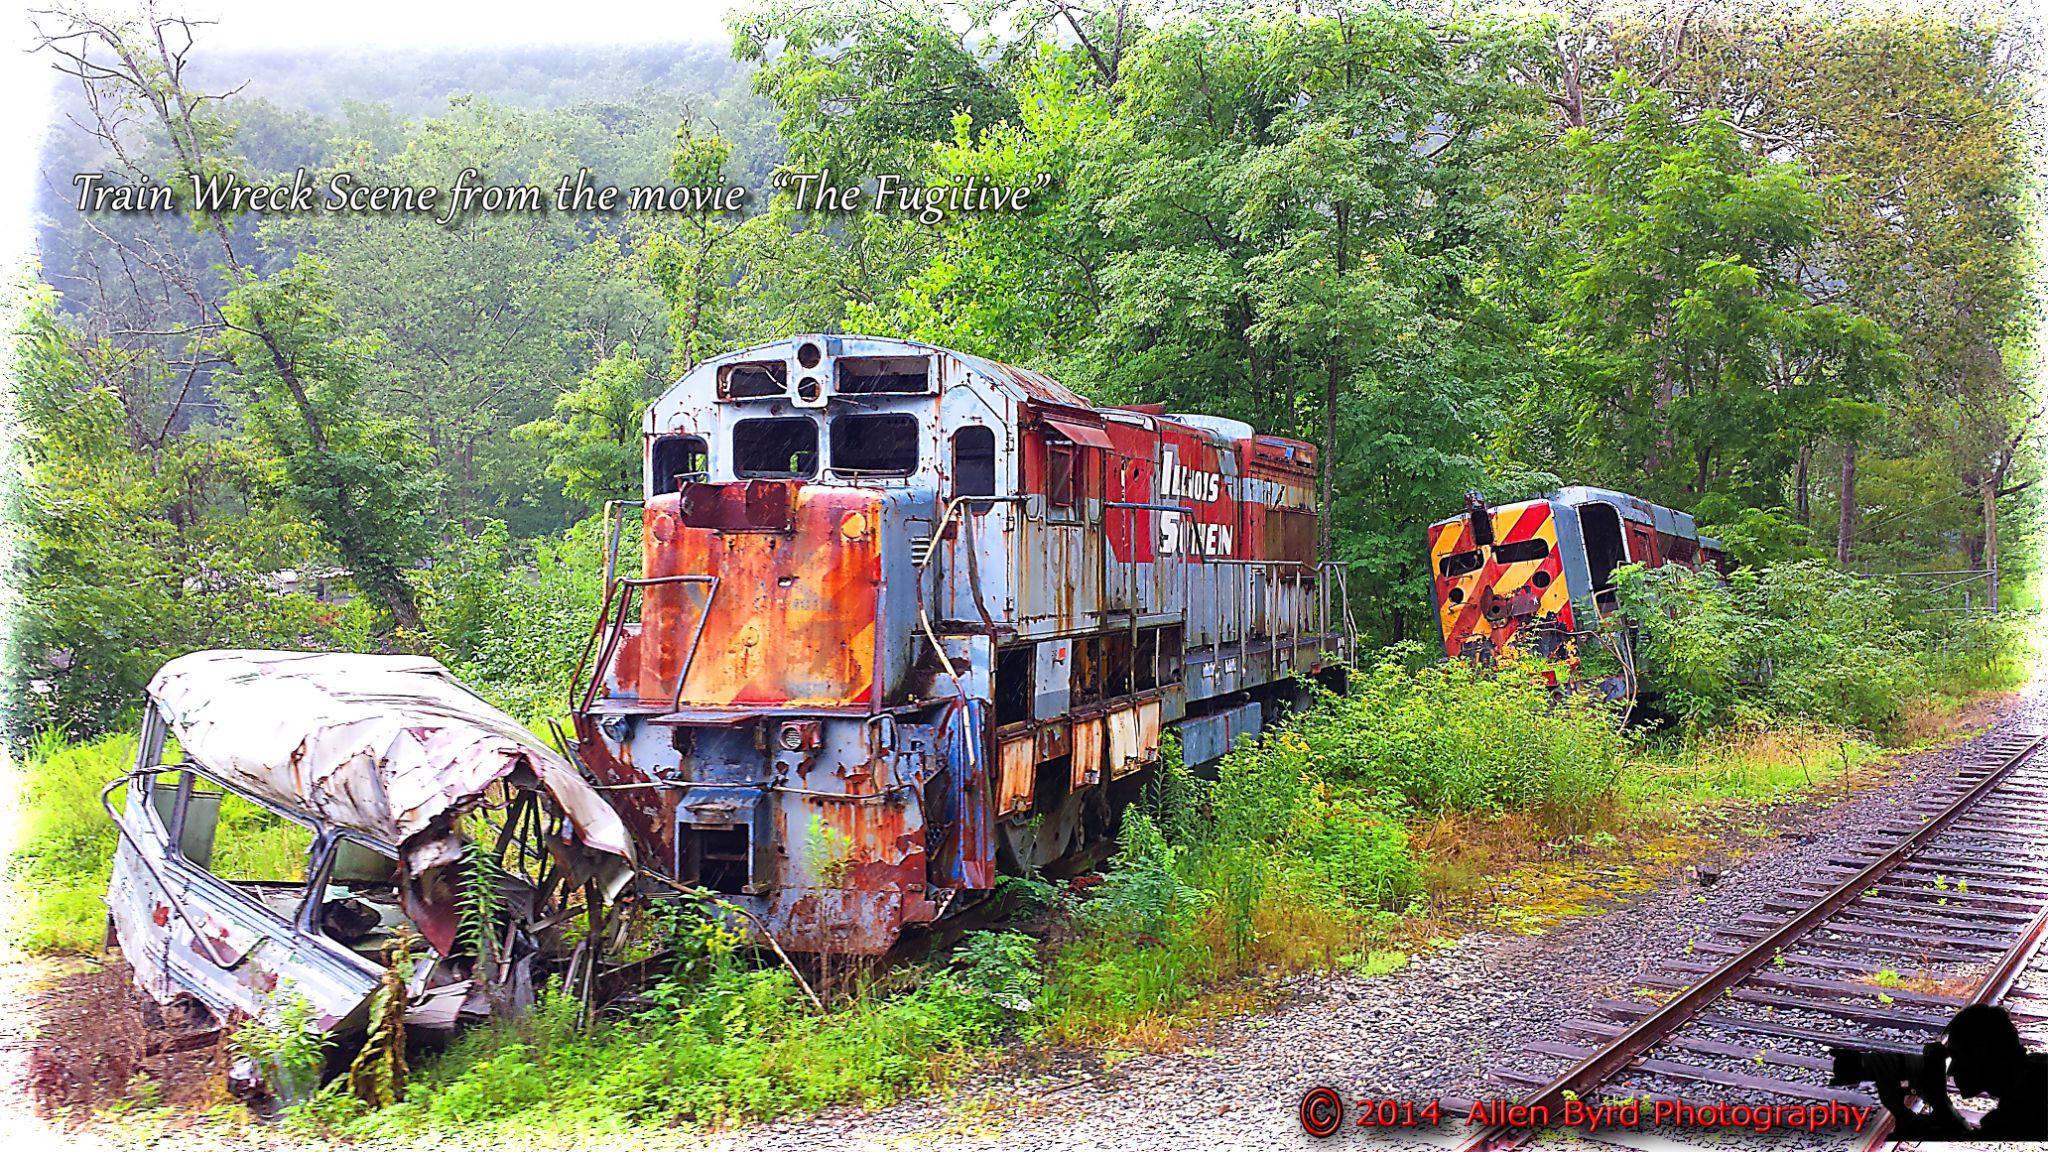 fugitive train wreck-1 by Allen Byrd Photography